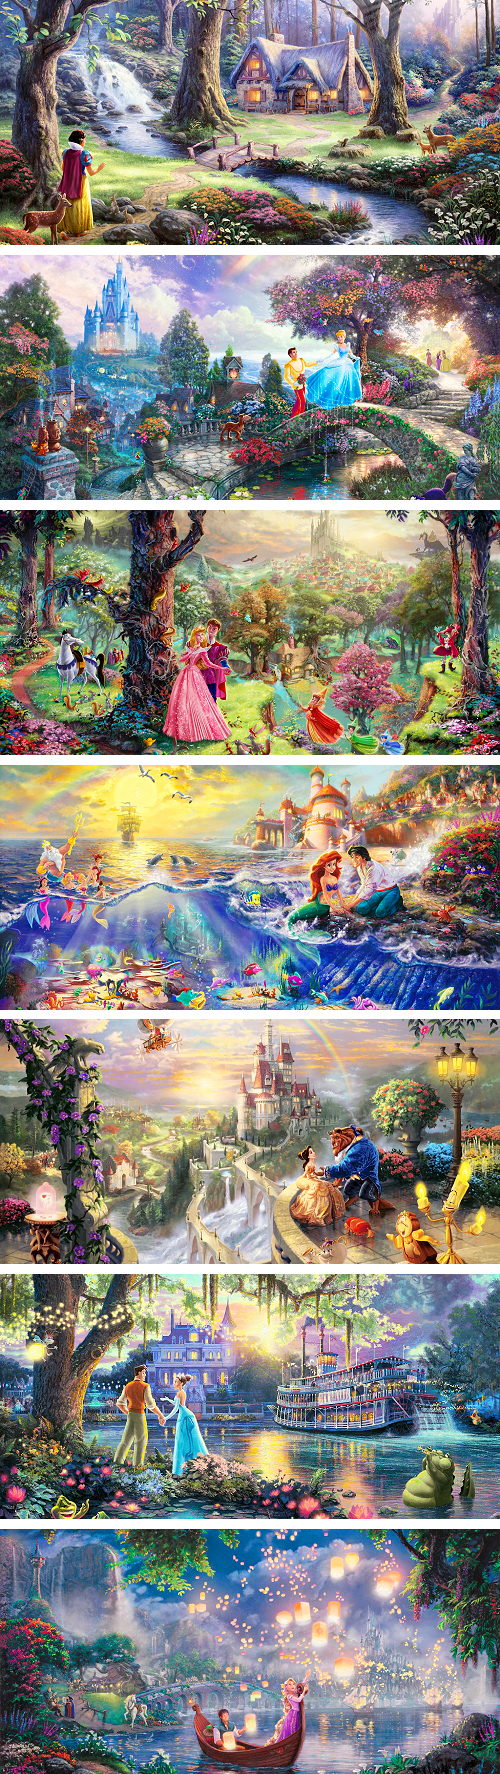 Diksha 3d Name Wallpaper Disney Tapete Seite 2 Von 3 Downloadwallpaper Org